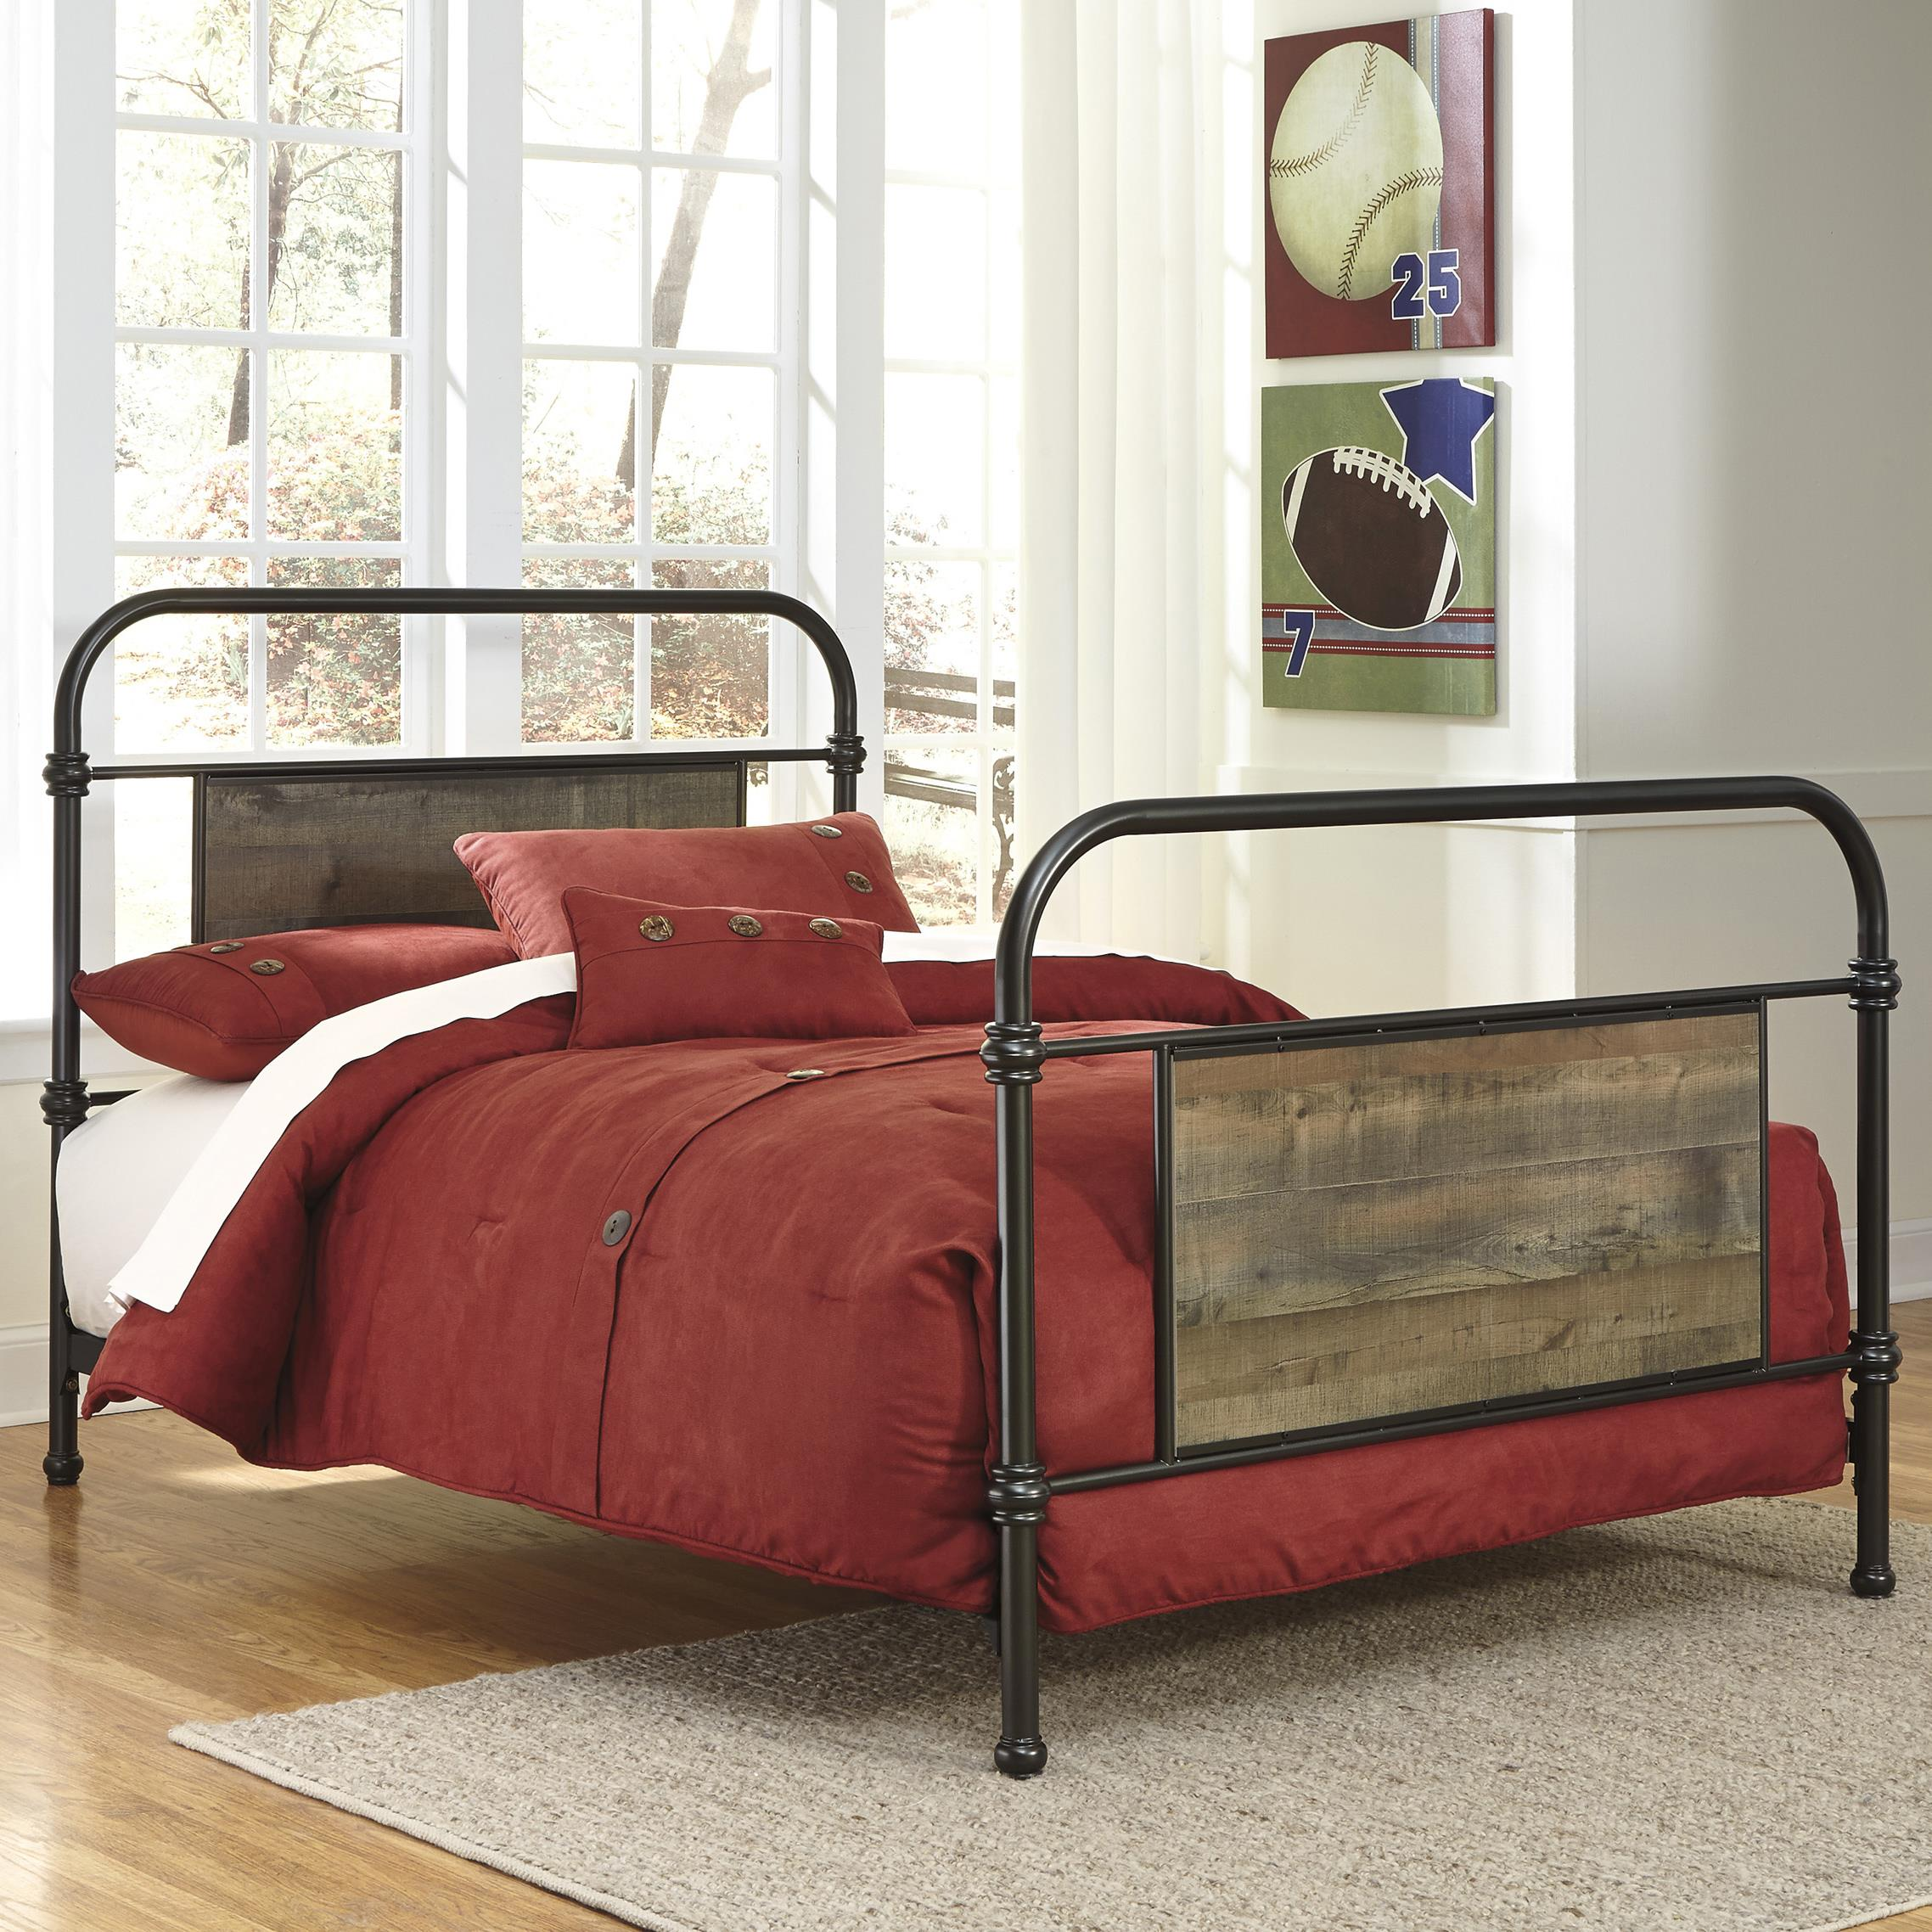 of canada twin and headboards frame headboard footboard footboards awesome metal gratograt bed iron amazing photos